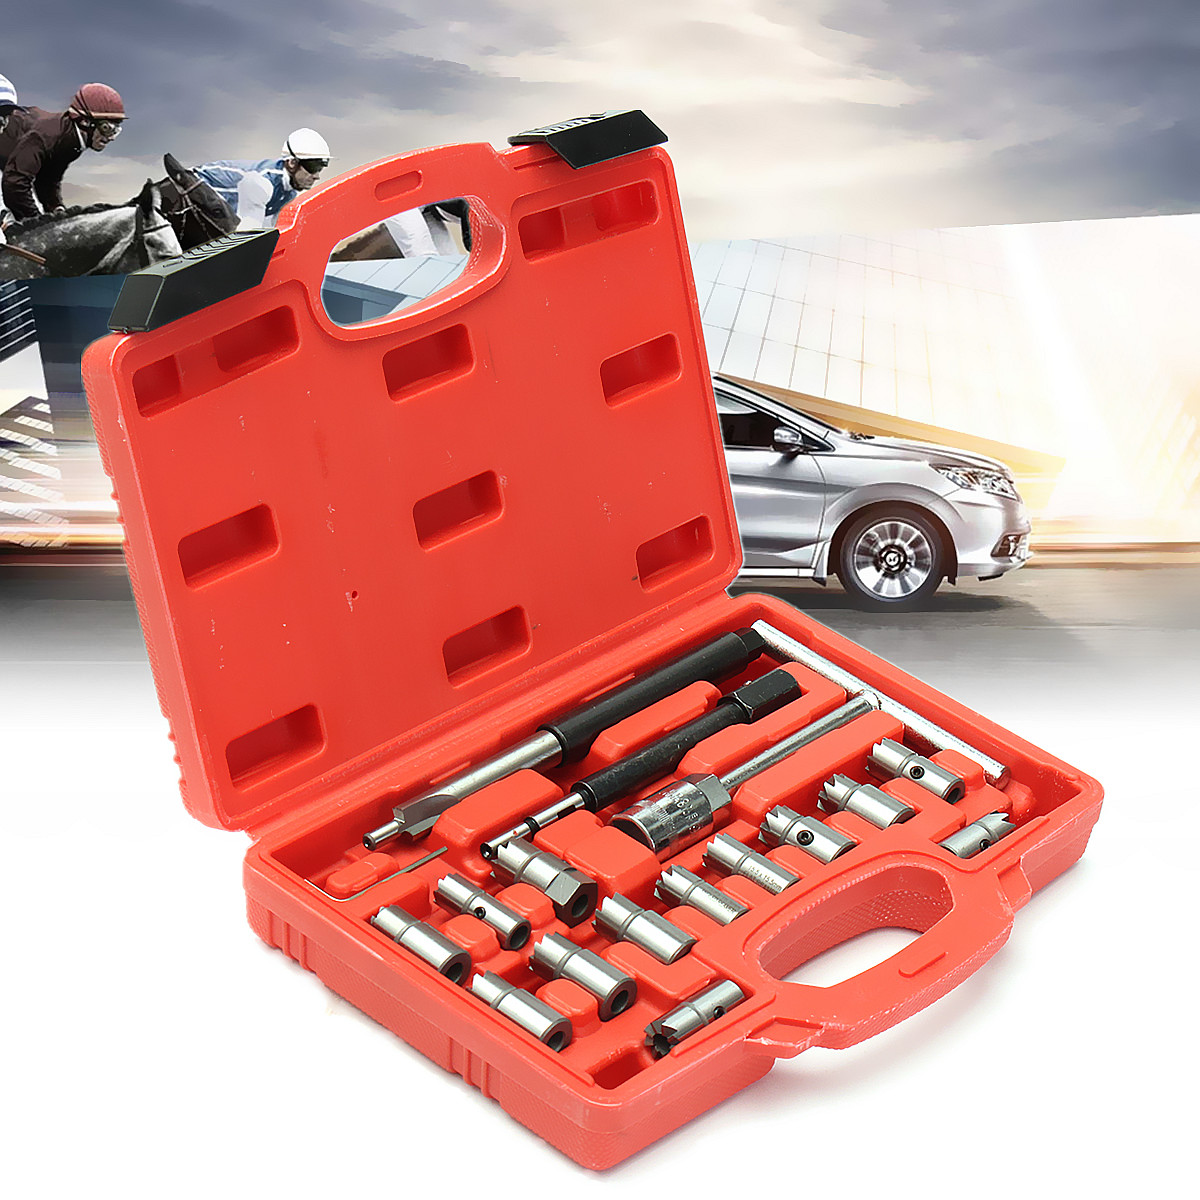 17Pcs T Handle Car Auto Repair Tool Set Diessel Injector Seat Cutters Cleaners Centering Pilot and Professional Universal Set